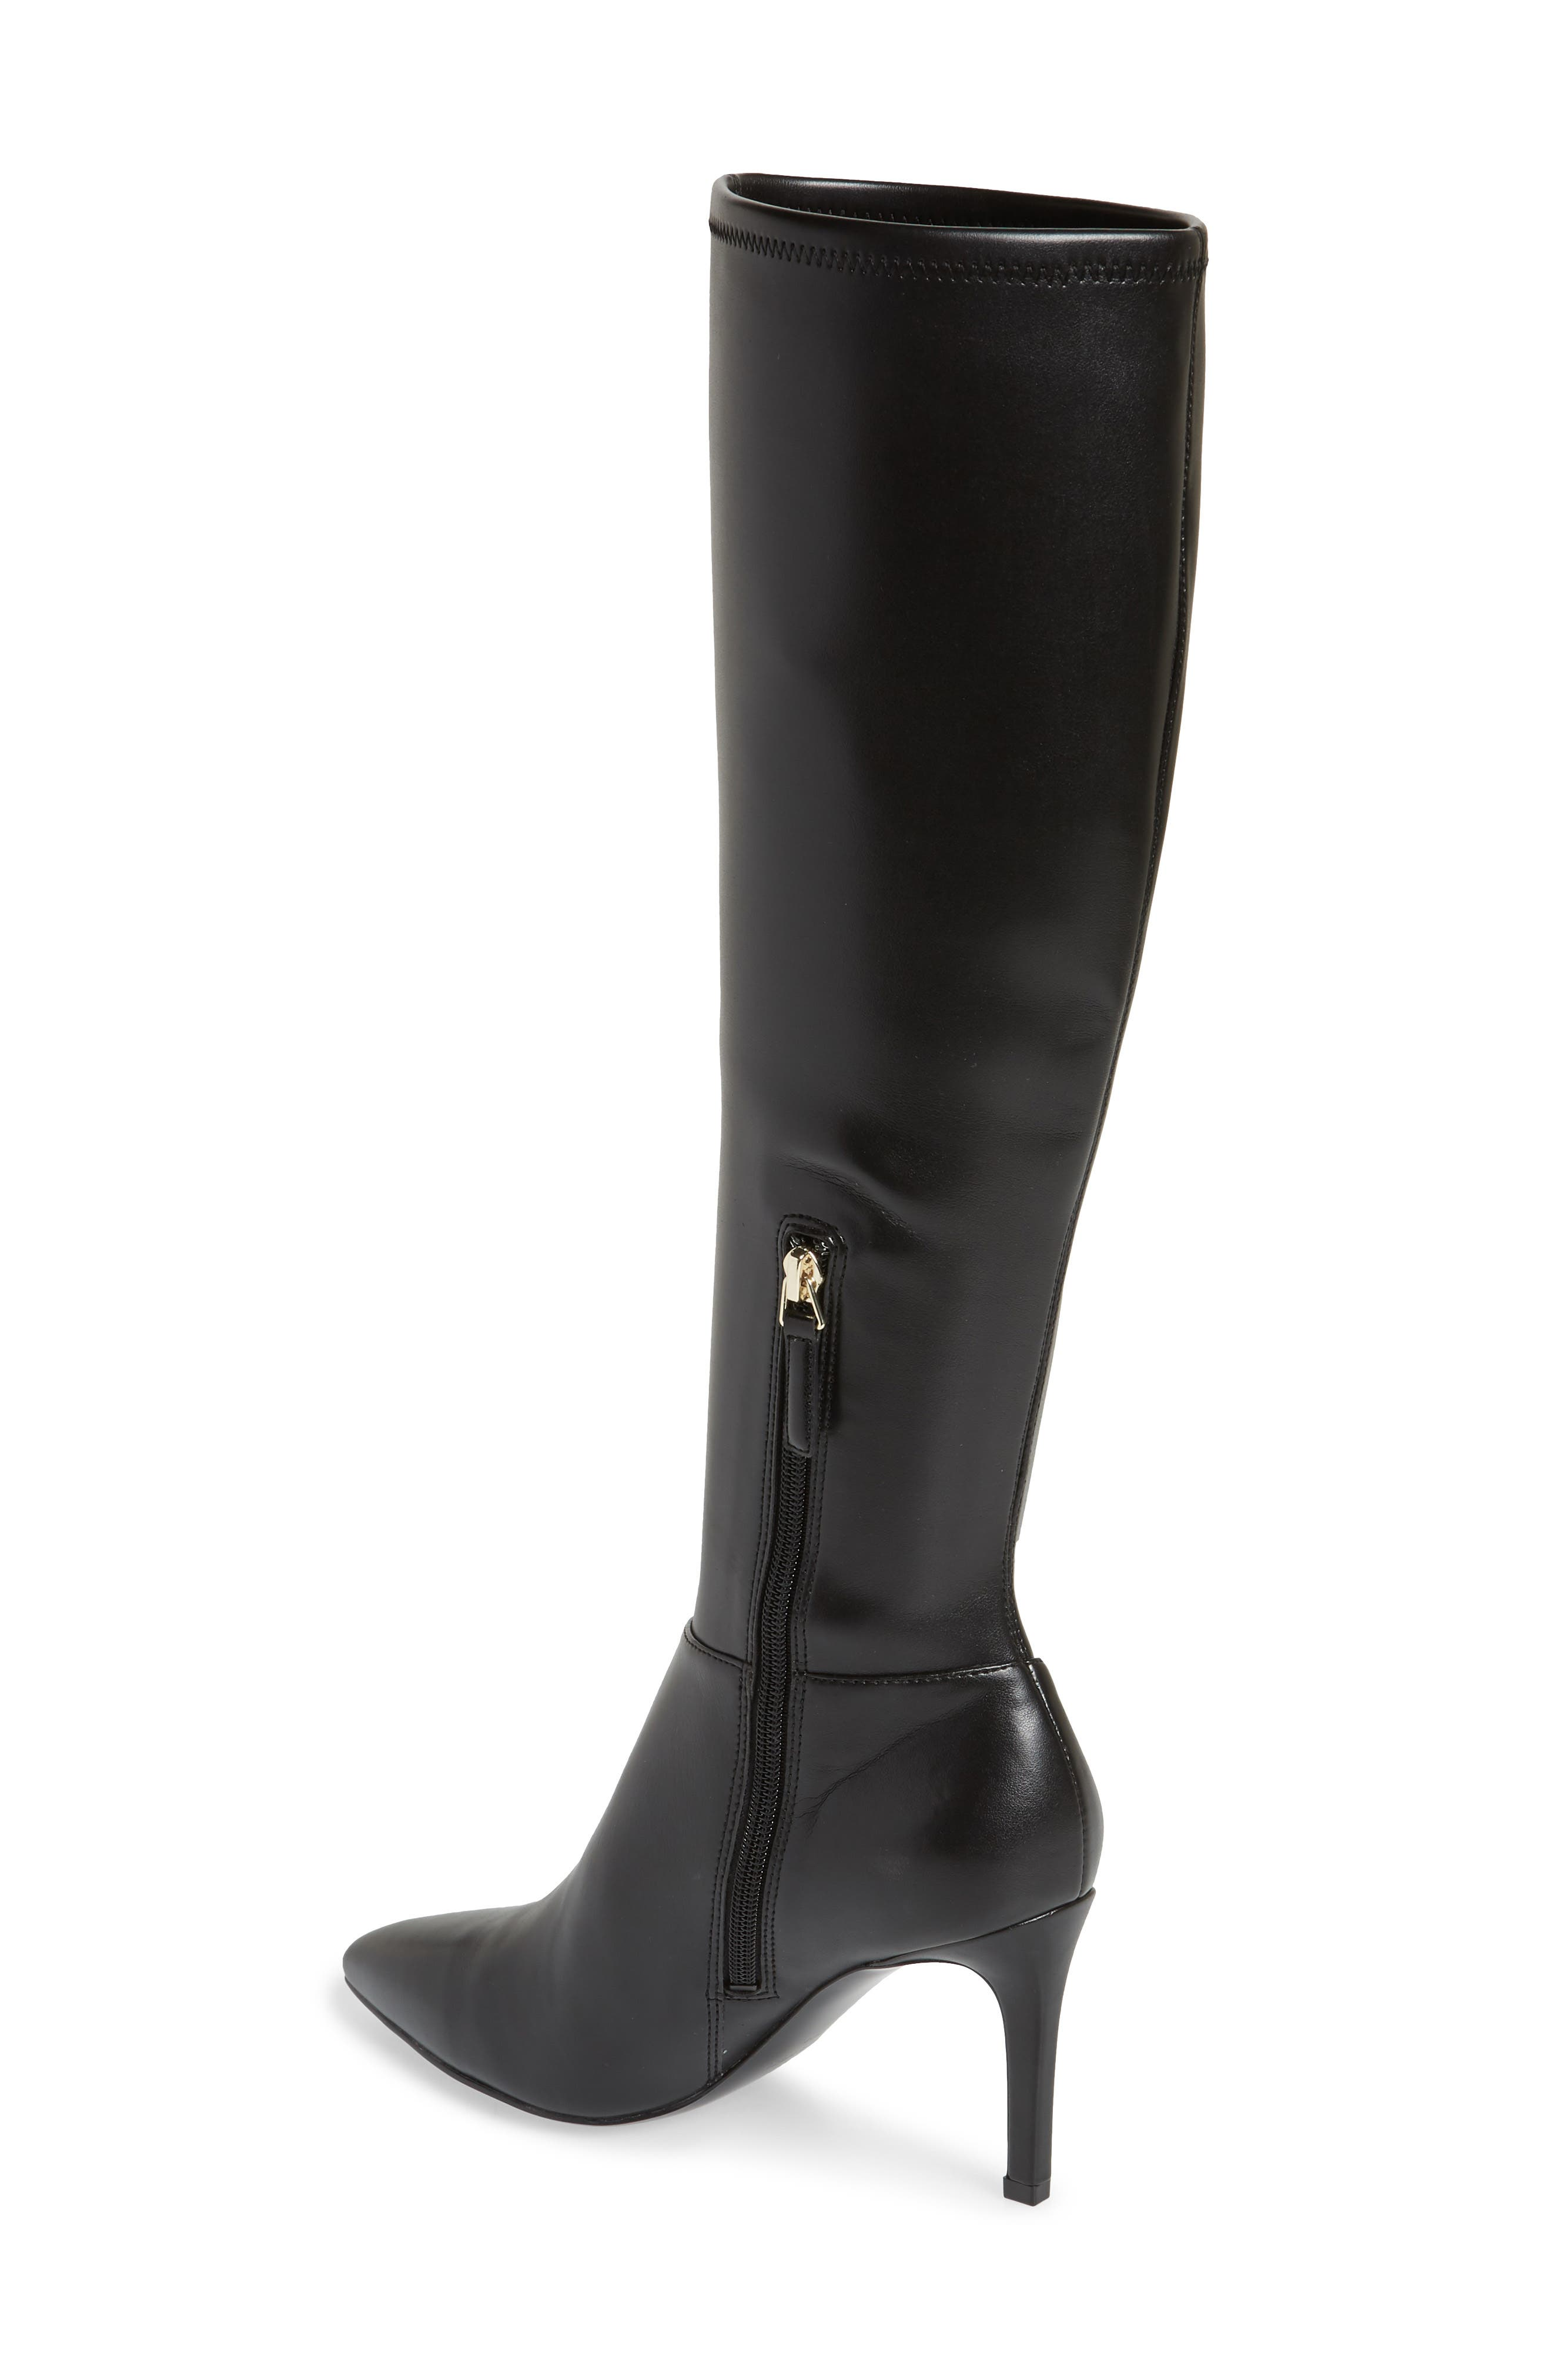 Chelsis Knee High Boot,                             Alternate thumbnail 2, color,                             BLACK FAUX LEATHER